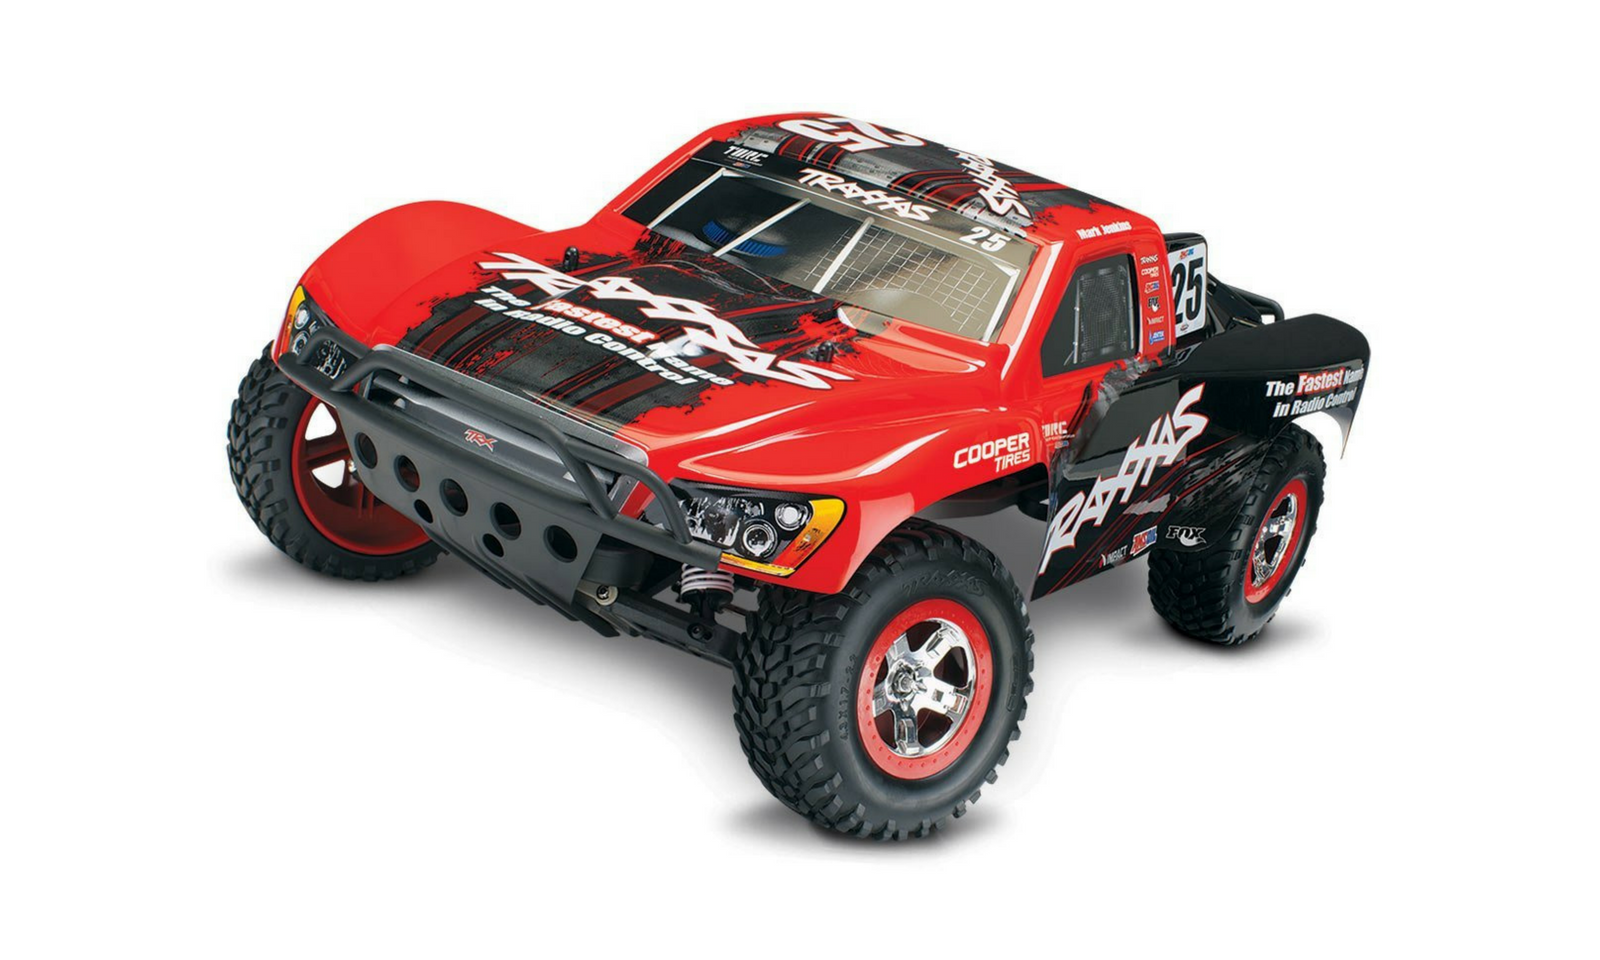 remote control car stores near me with Traxxas Slash Vxl on Homecase of the week also Rc Car Stores Near Me also Product of the month besides Find Hobby Shops Vez as well Ray Ban Repairs Australia Time Sydney Now.